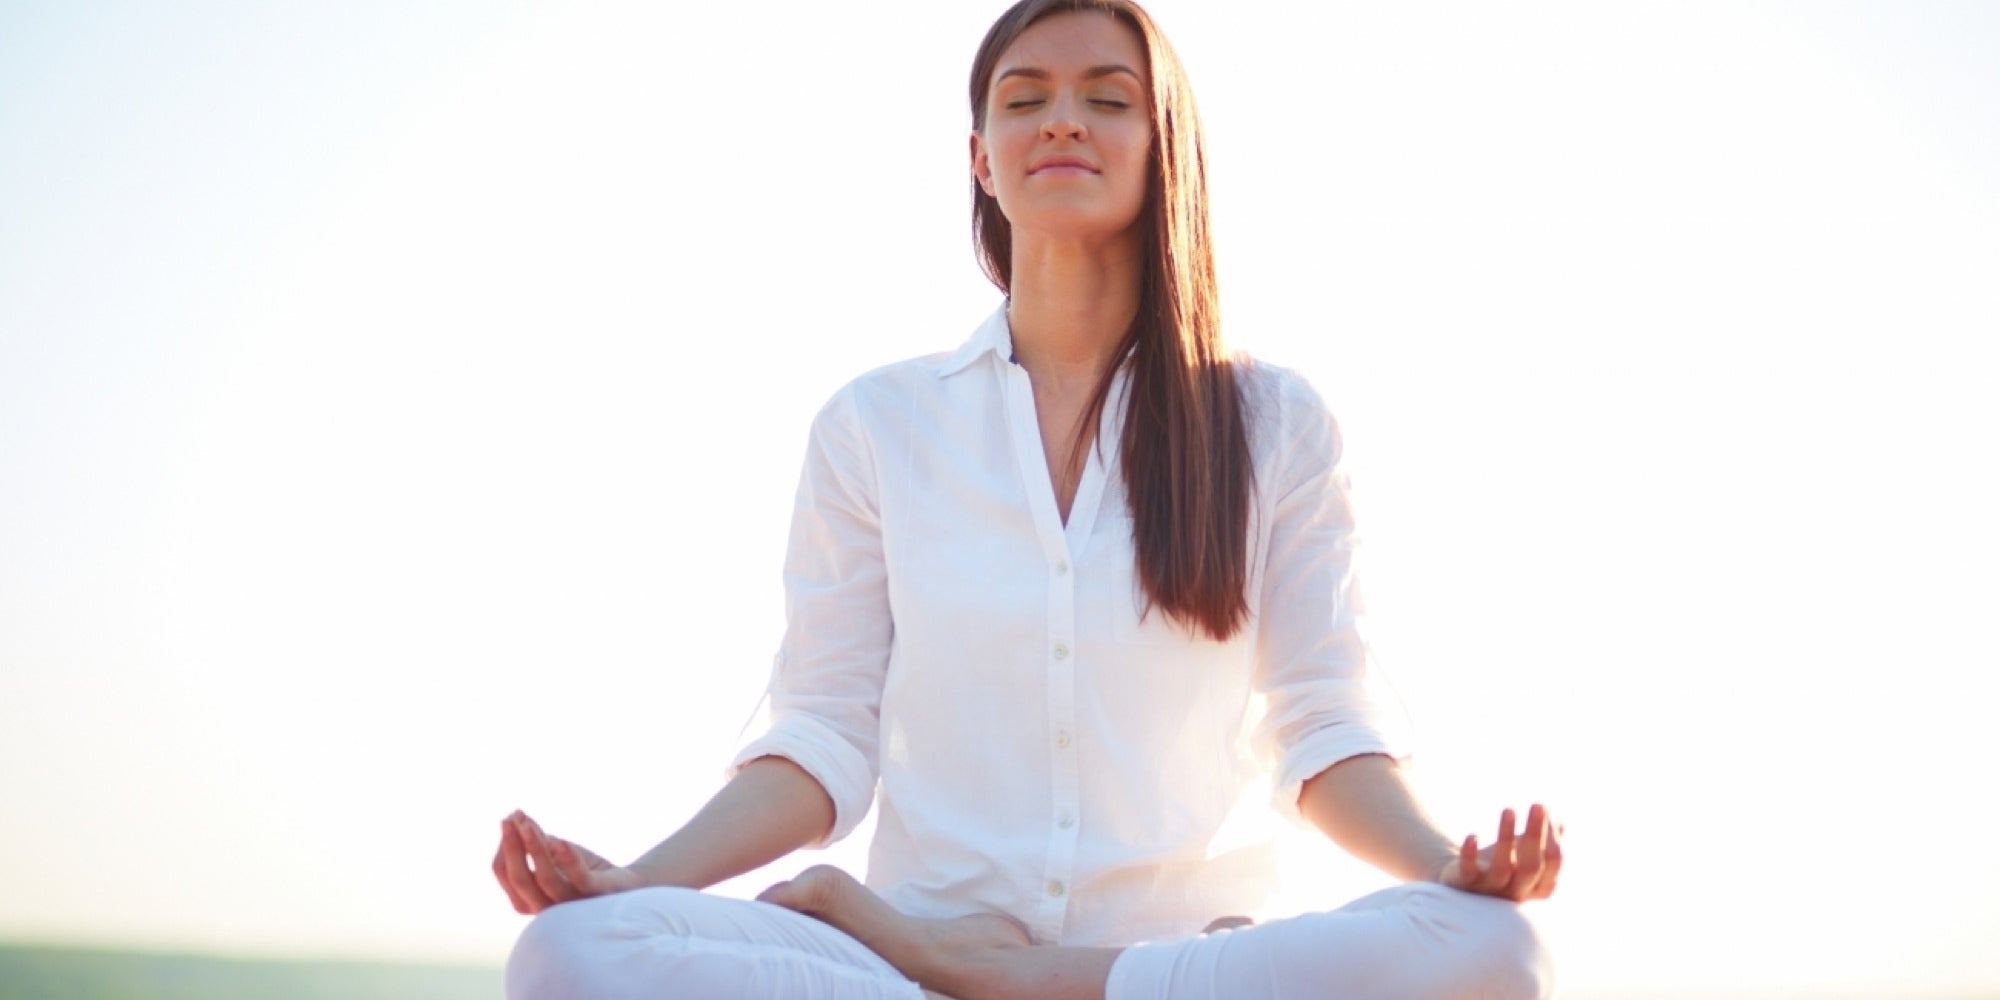 4. Give Meditation A Try